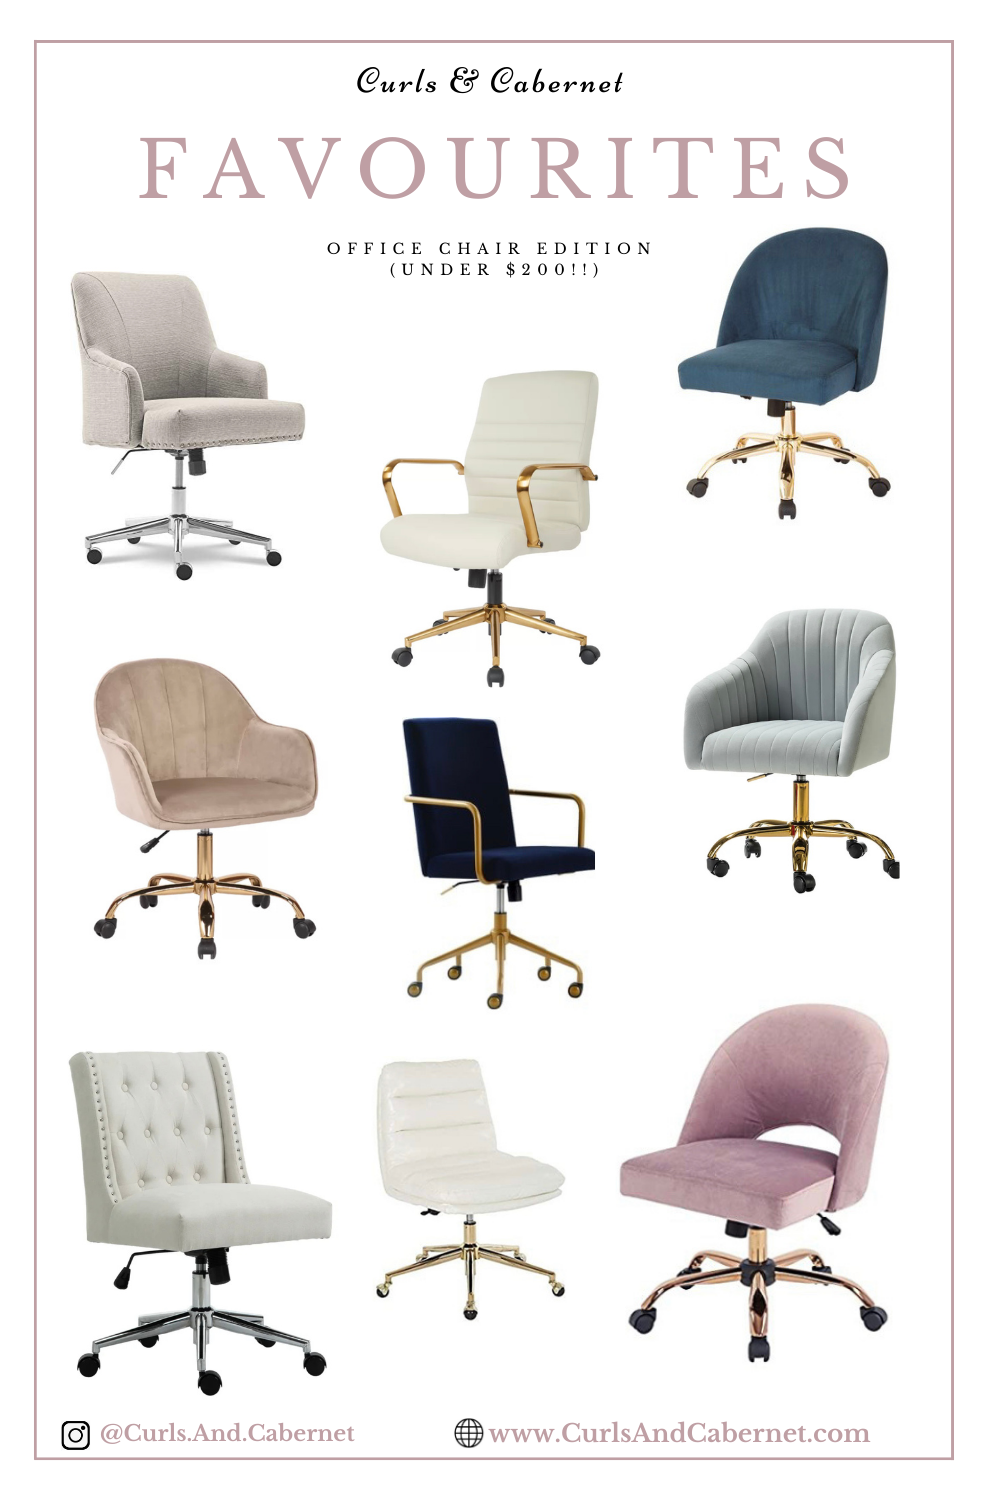 Favourite: Affordable Chic & Beautiful Office Chairs!